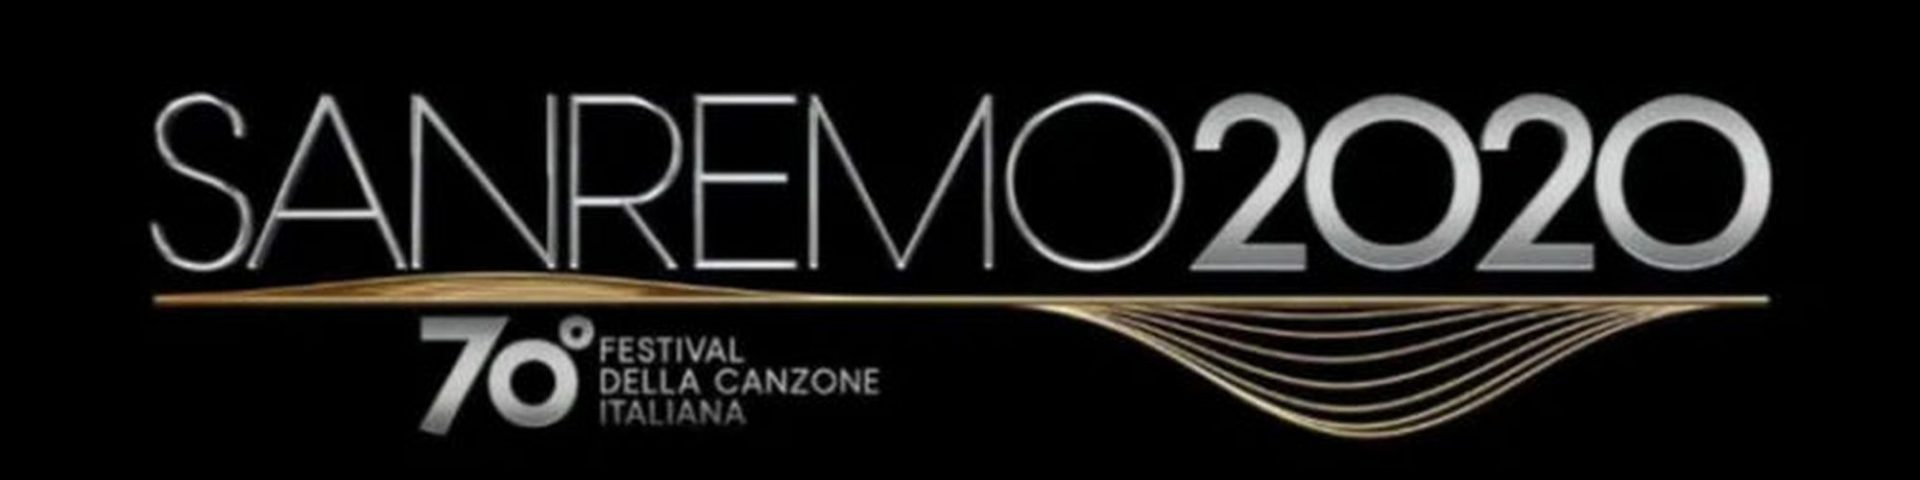 Festival di Sanremo del 9 febbraio on demand, rivedi in streaming